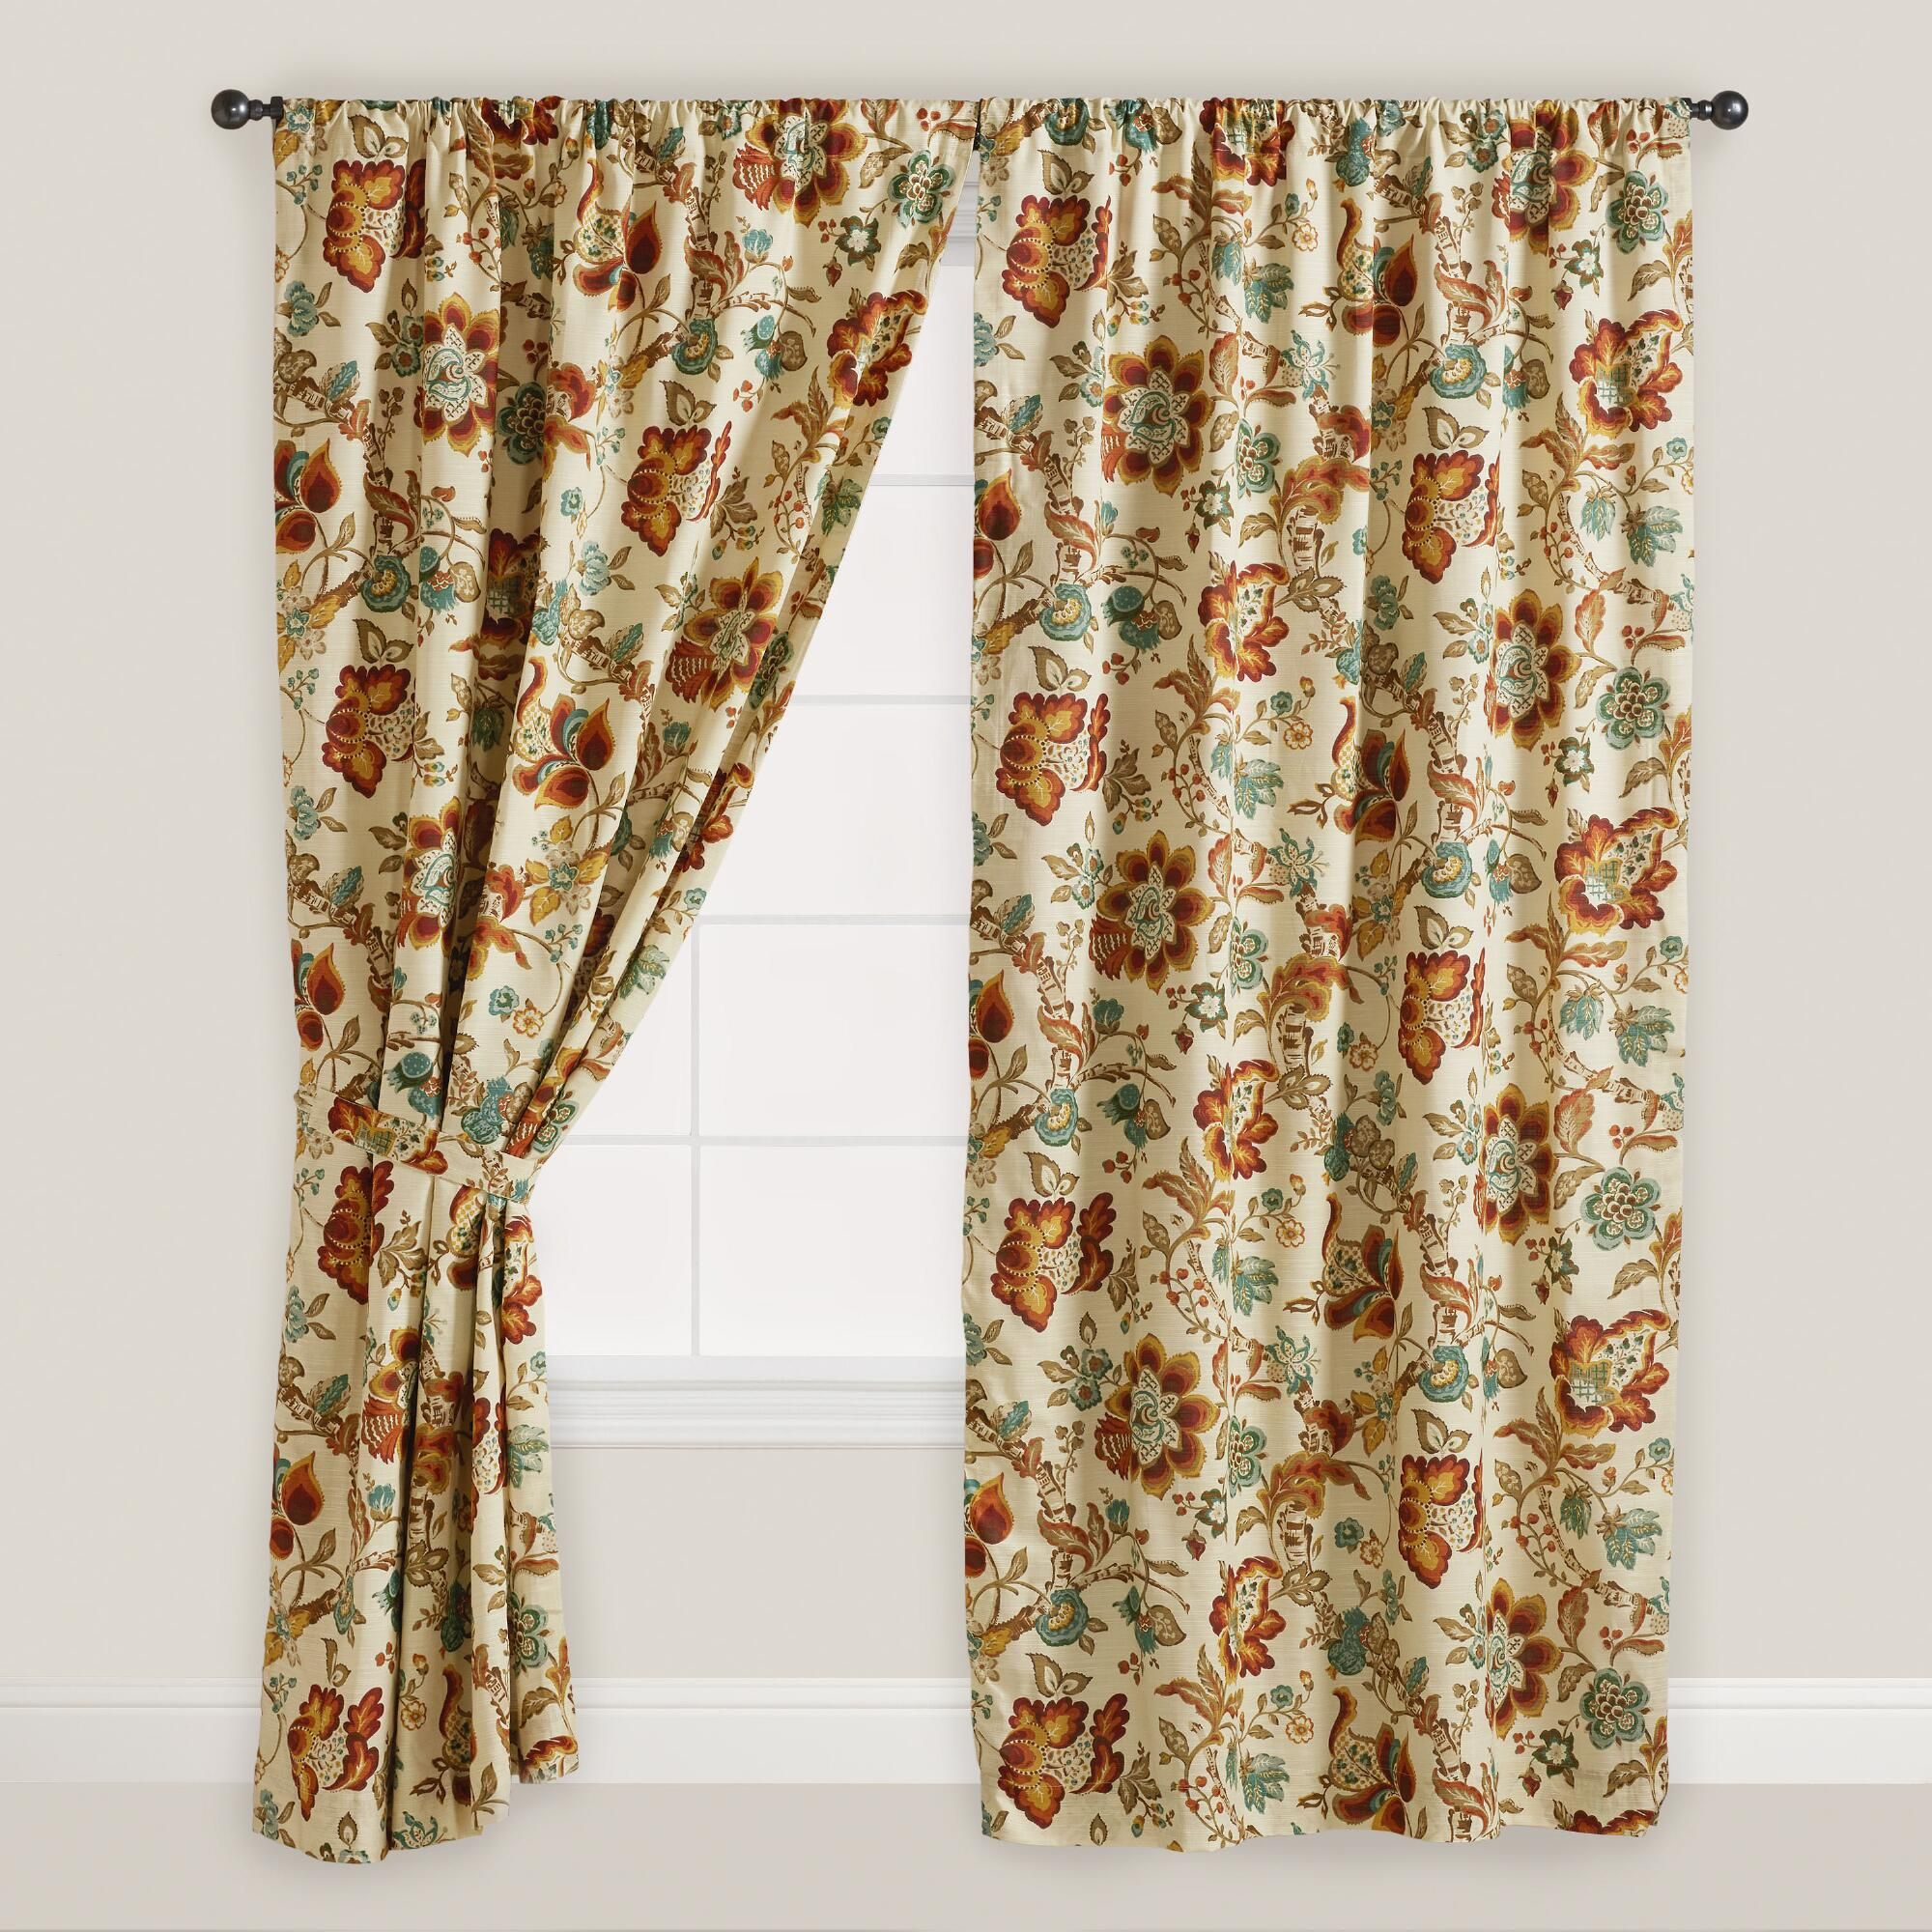 Multicolor floral malli sleevetop curtains set of world market